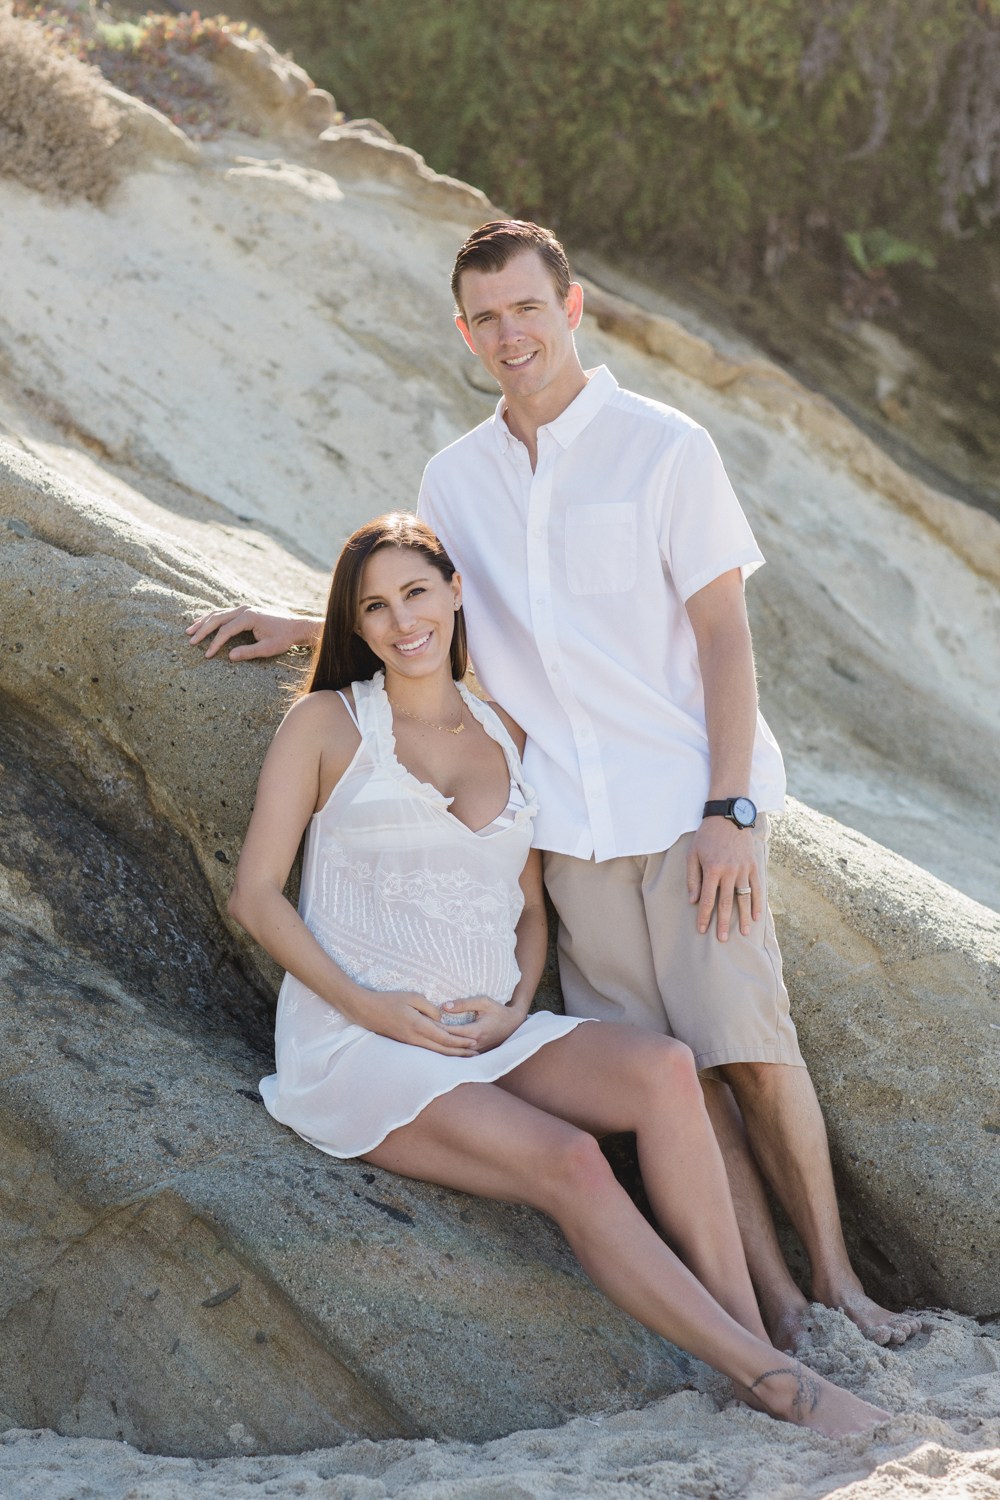 LagunaBeach_Family_MaternityShoot_SidneyKraemer_Low-51.jpg